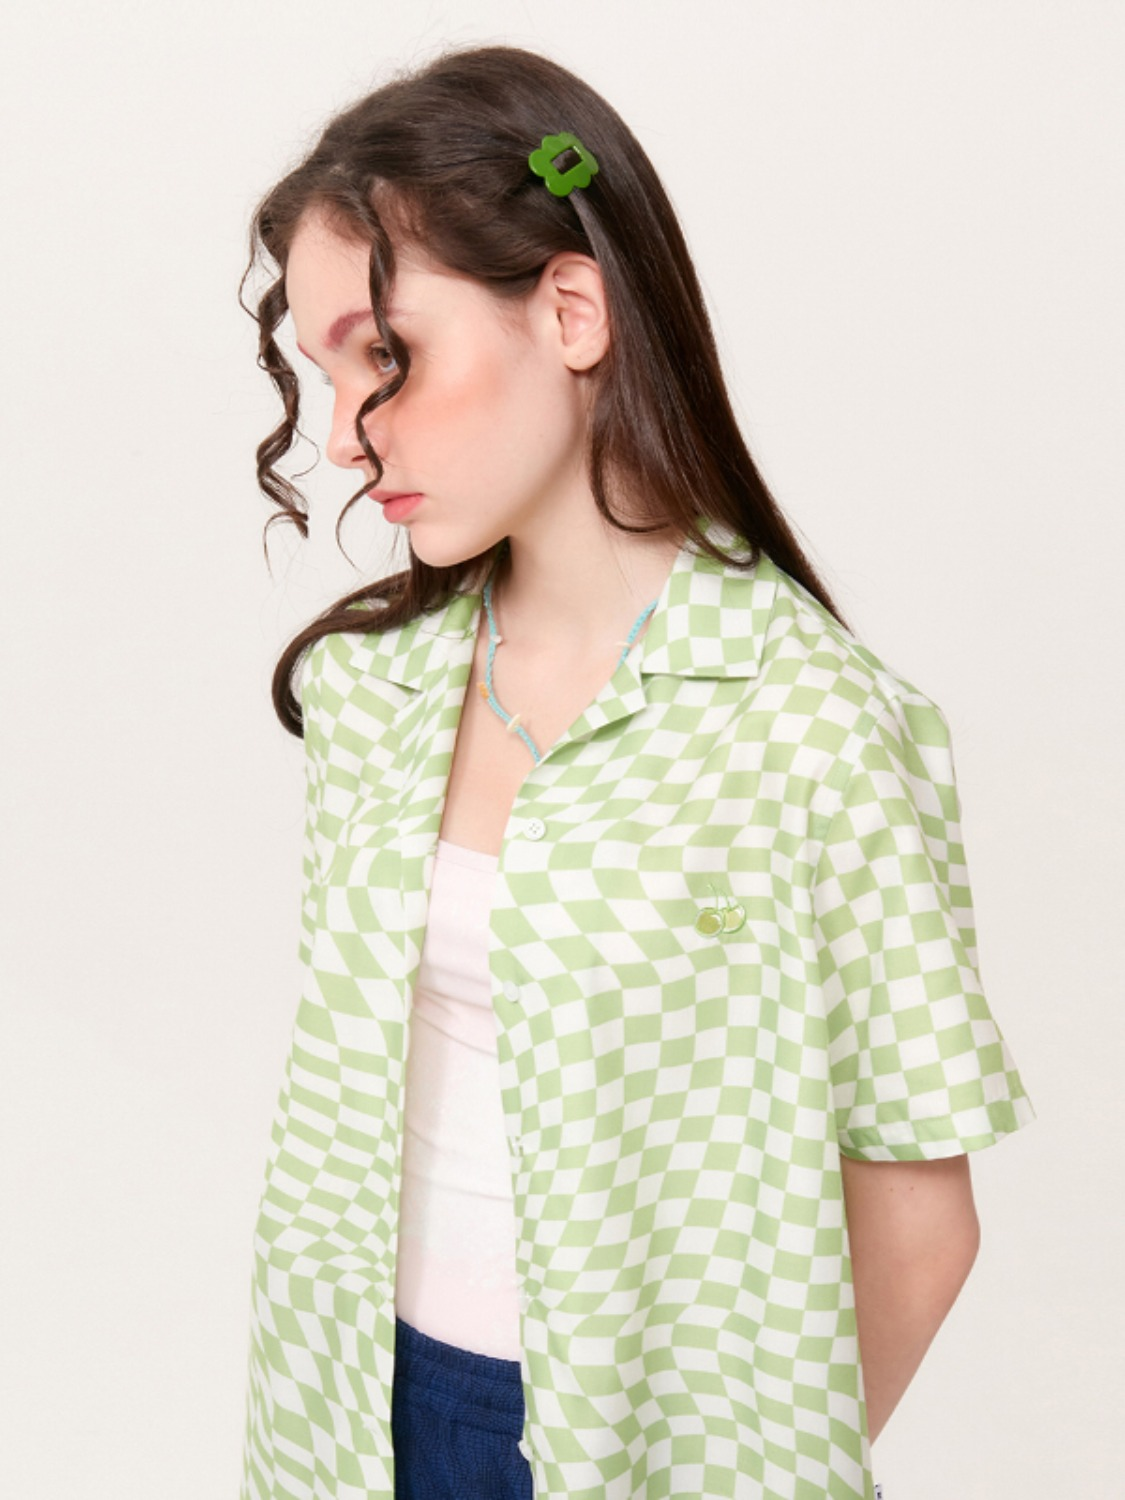 (4월 27일 예약발송)TONE ON TONE CHERRY CHECK PATTERN SHIRT KH [GREEN]